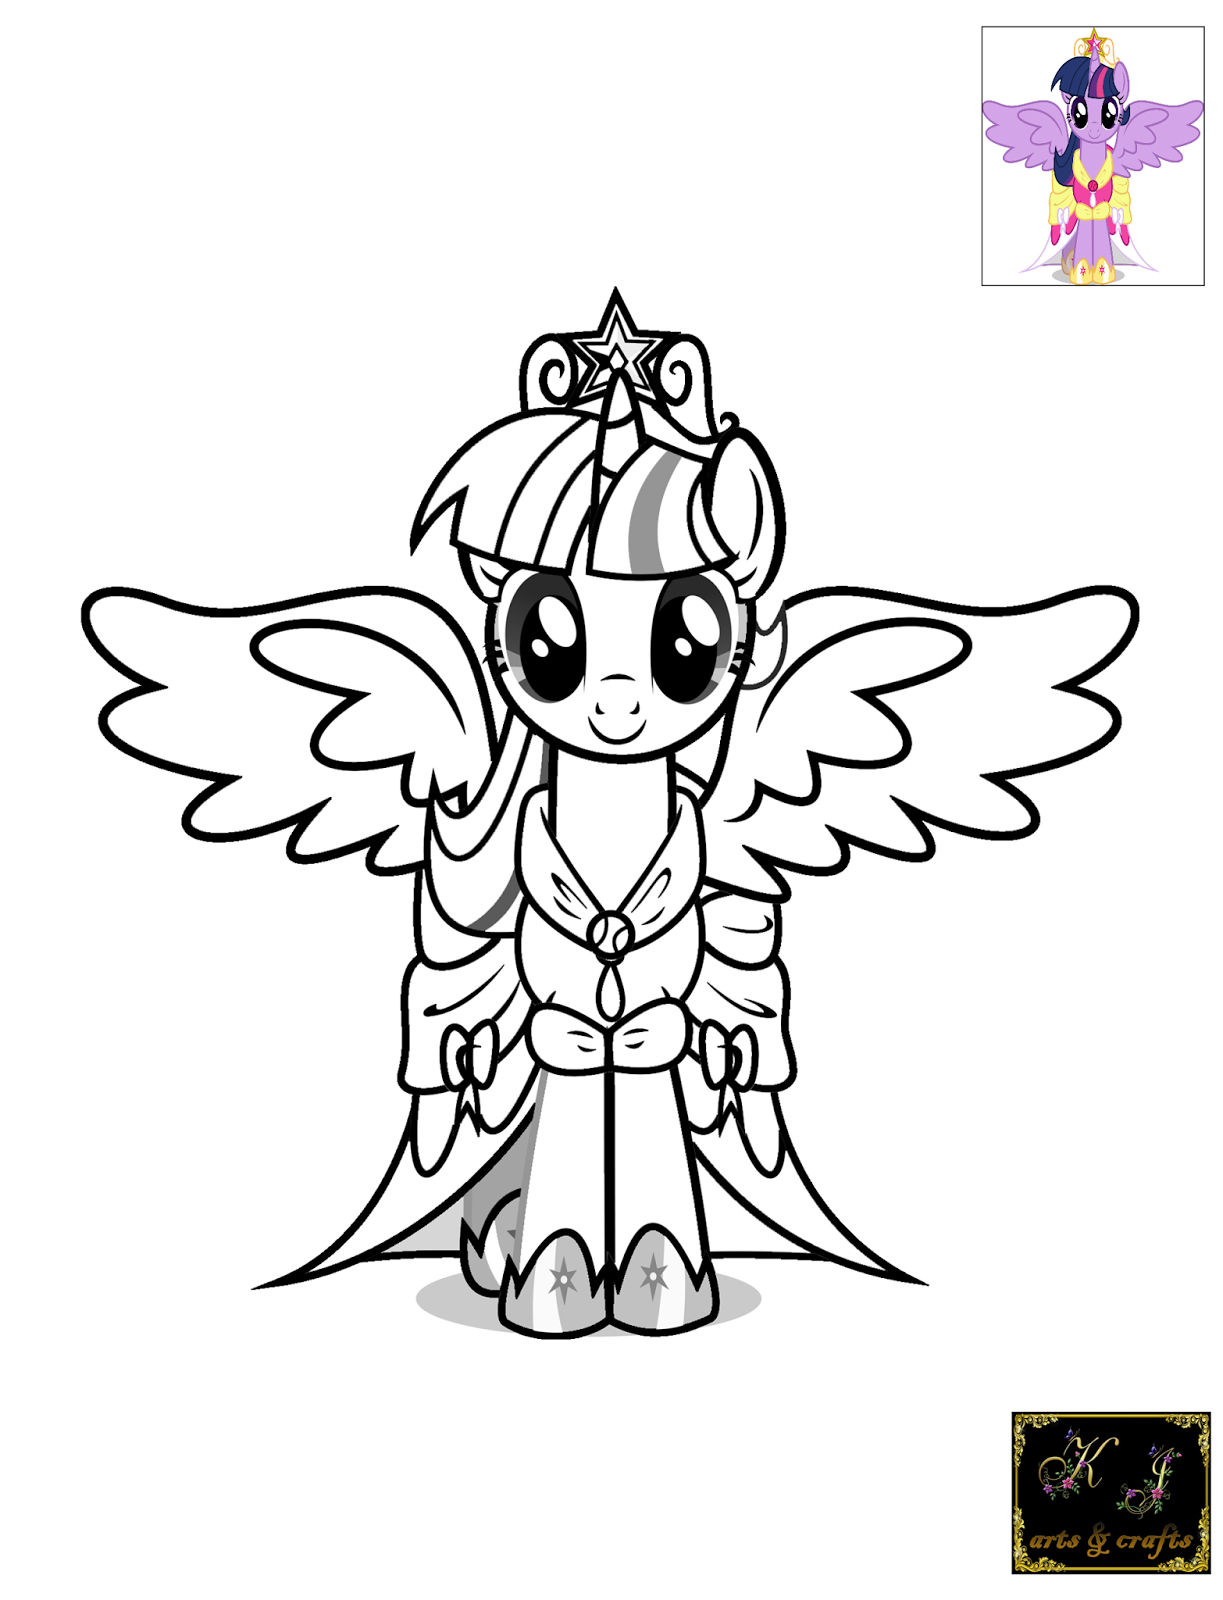 Coloring Pages Of Princess Twilight Sparkle : Kj coloring pages twilight sparkle